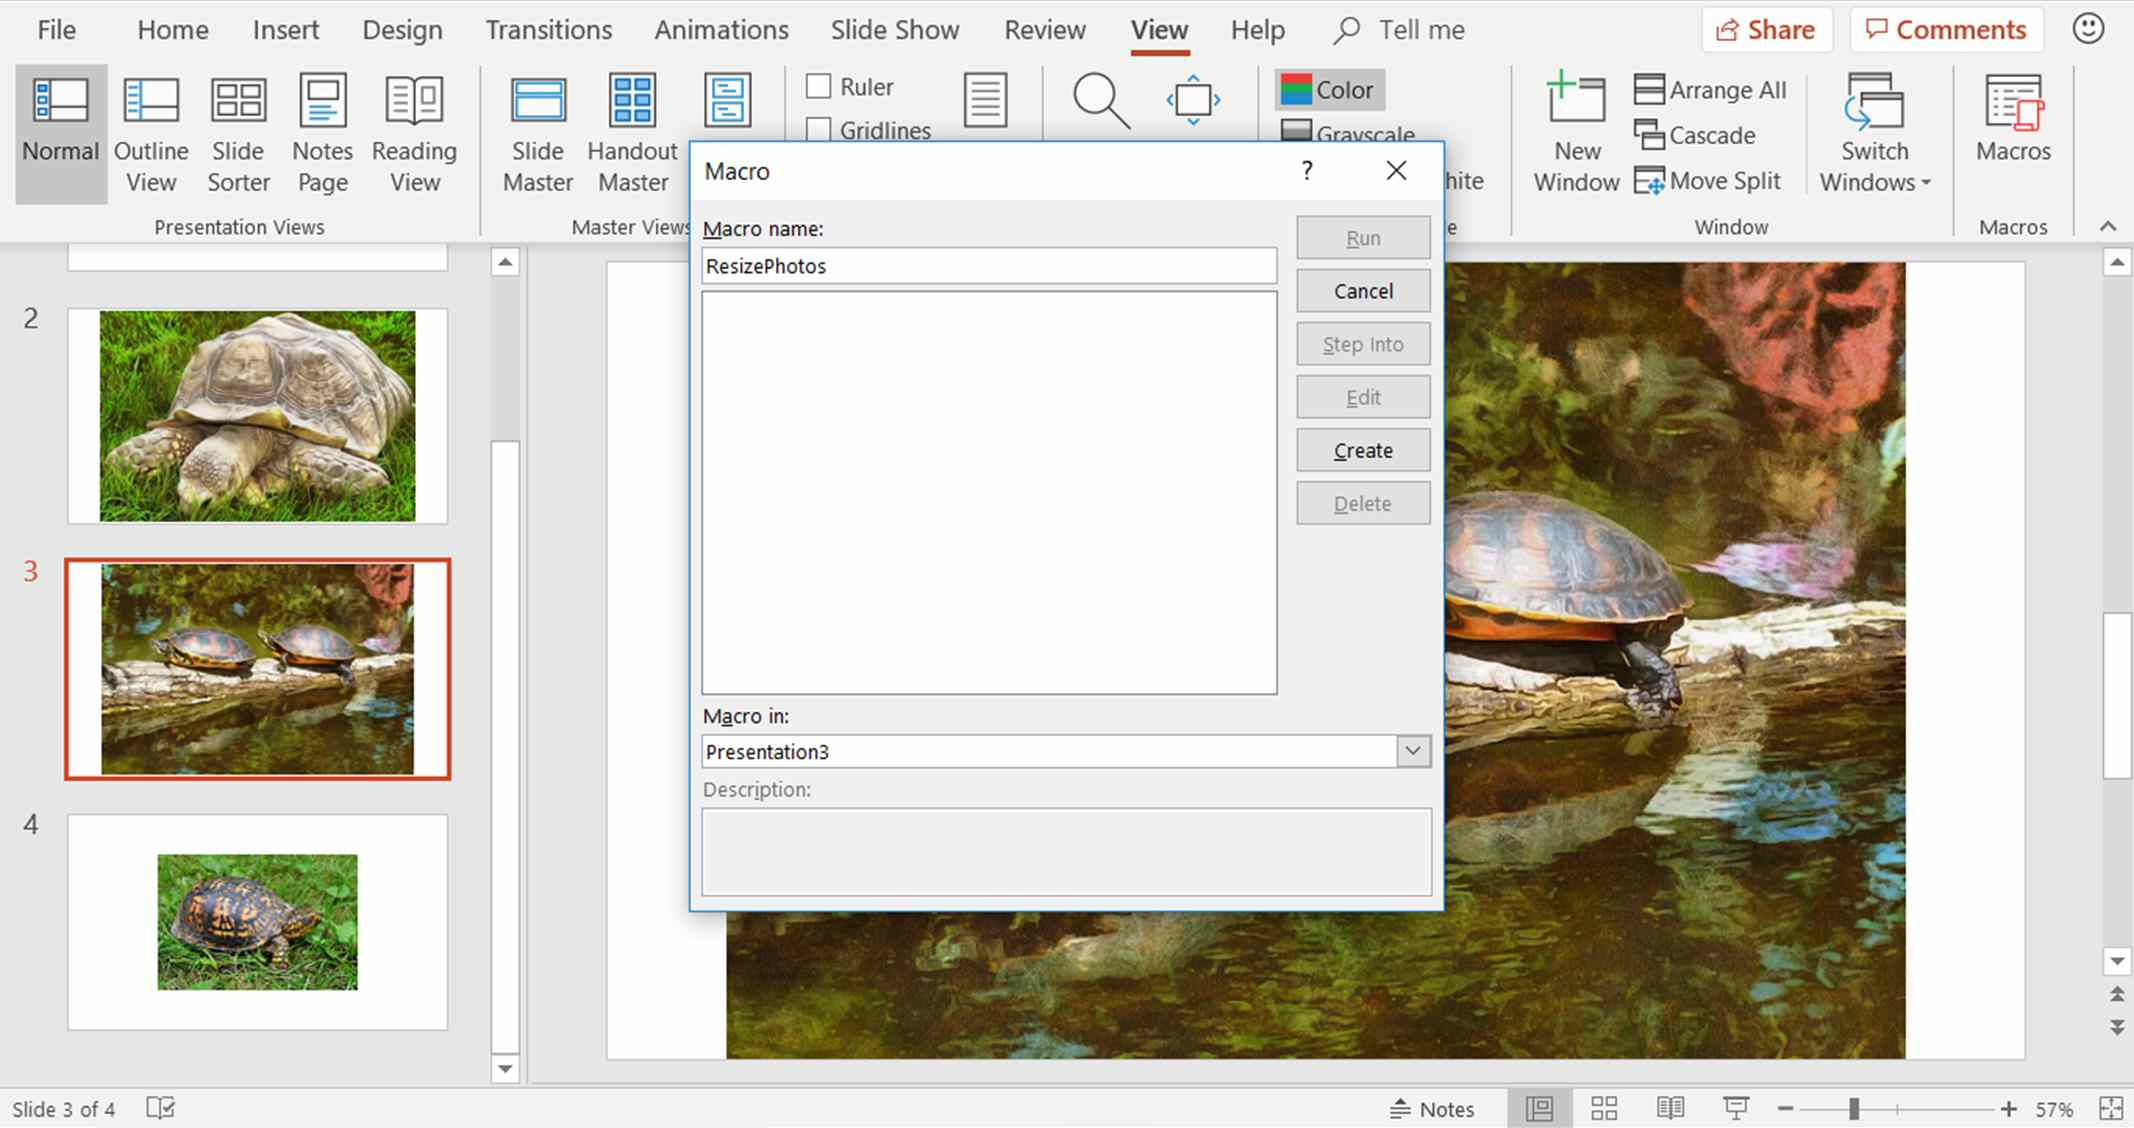 A screenshot showing how to name a macro in PowerPoint